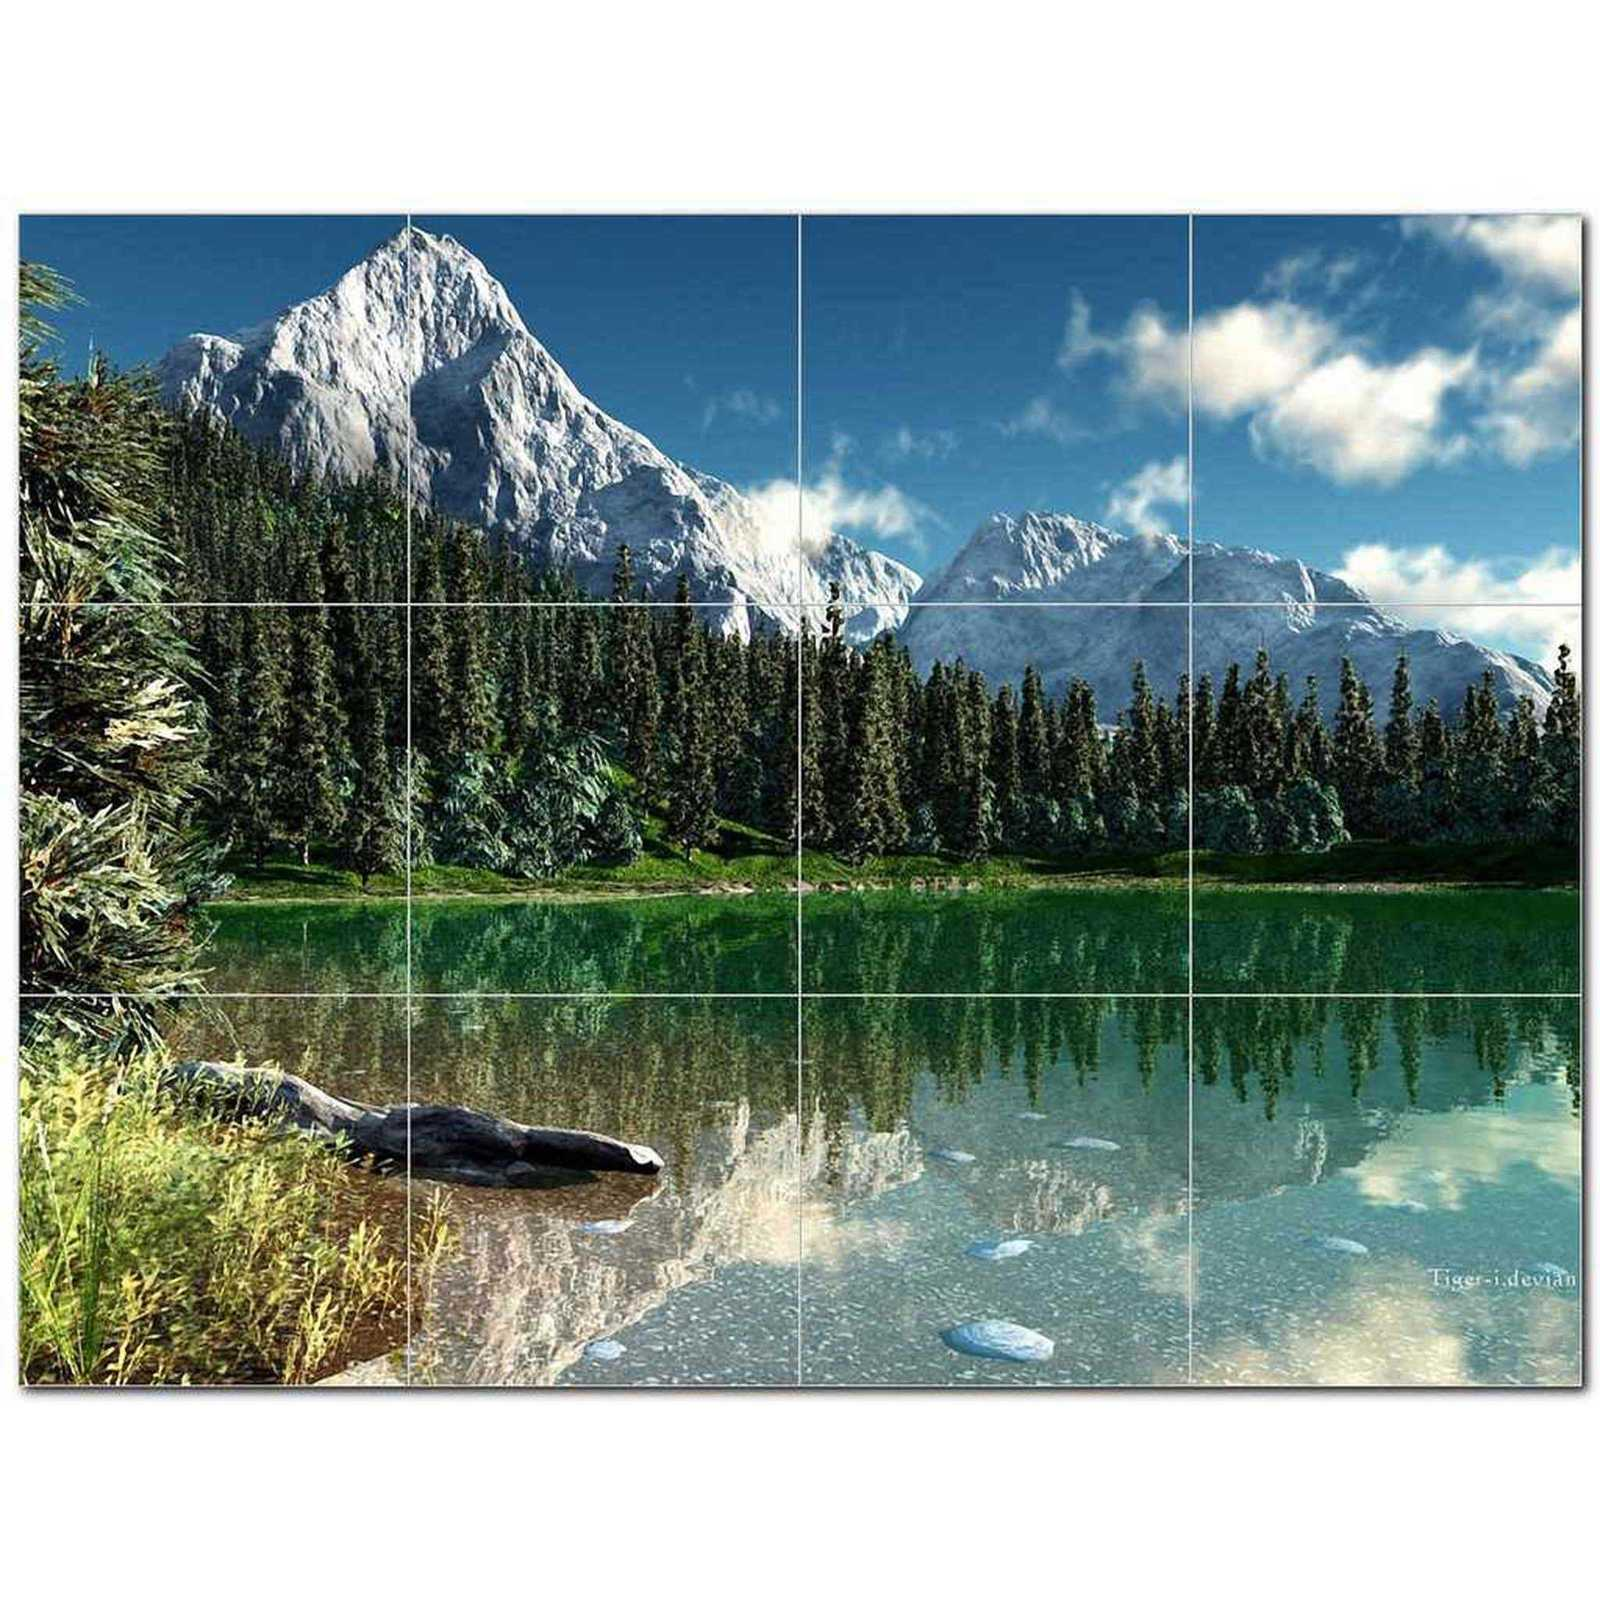 Primary image for Mountain Photo Ceramic Tile Mural Kitchen Backsplash Bathroom Shower BAZ405540